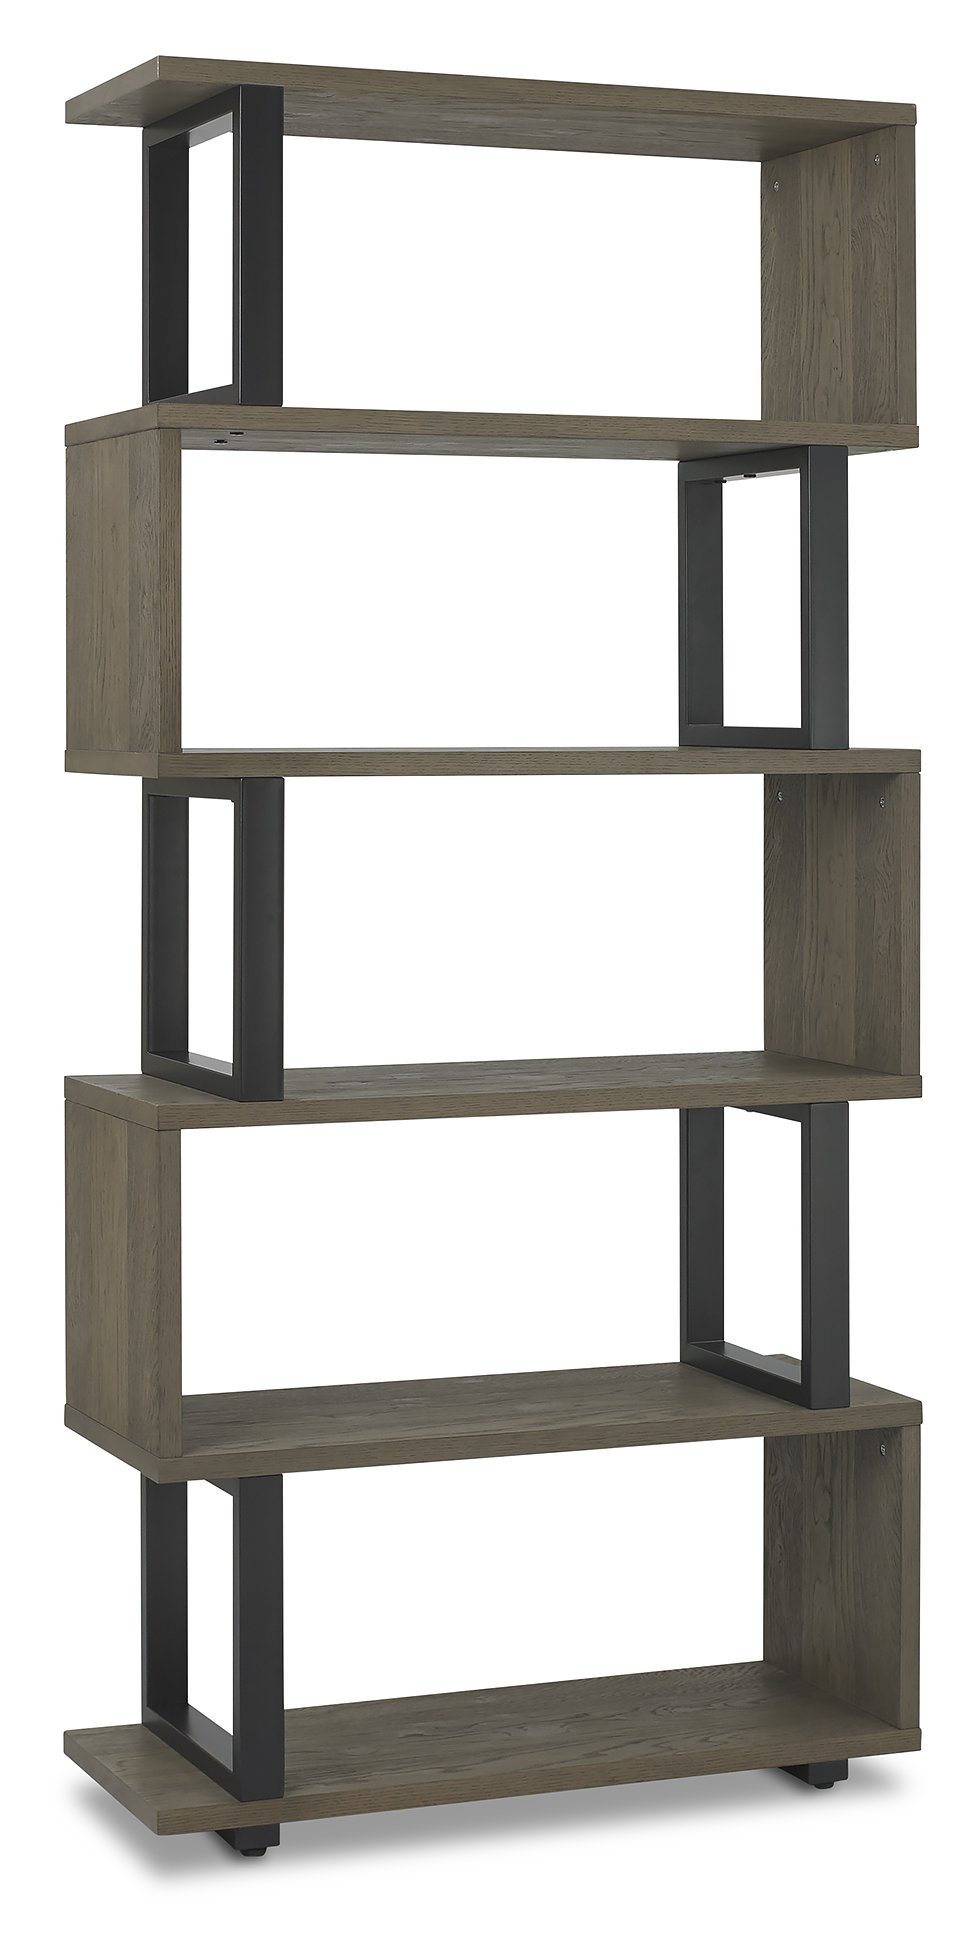 BRINDISI OPEN BOOKCASE - ANGLE VIEW